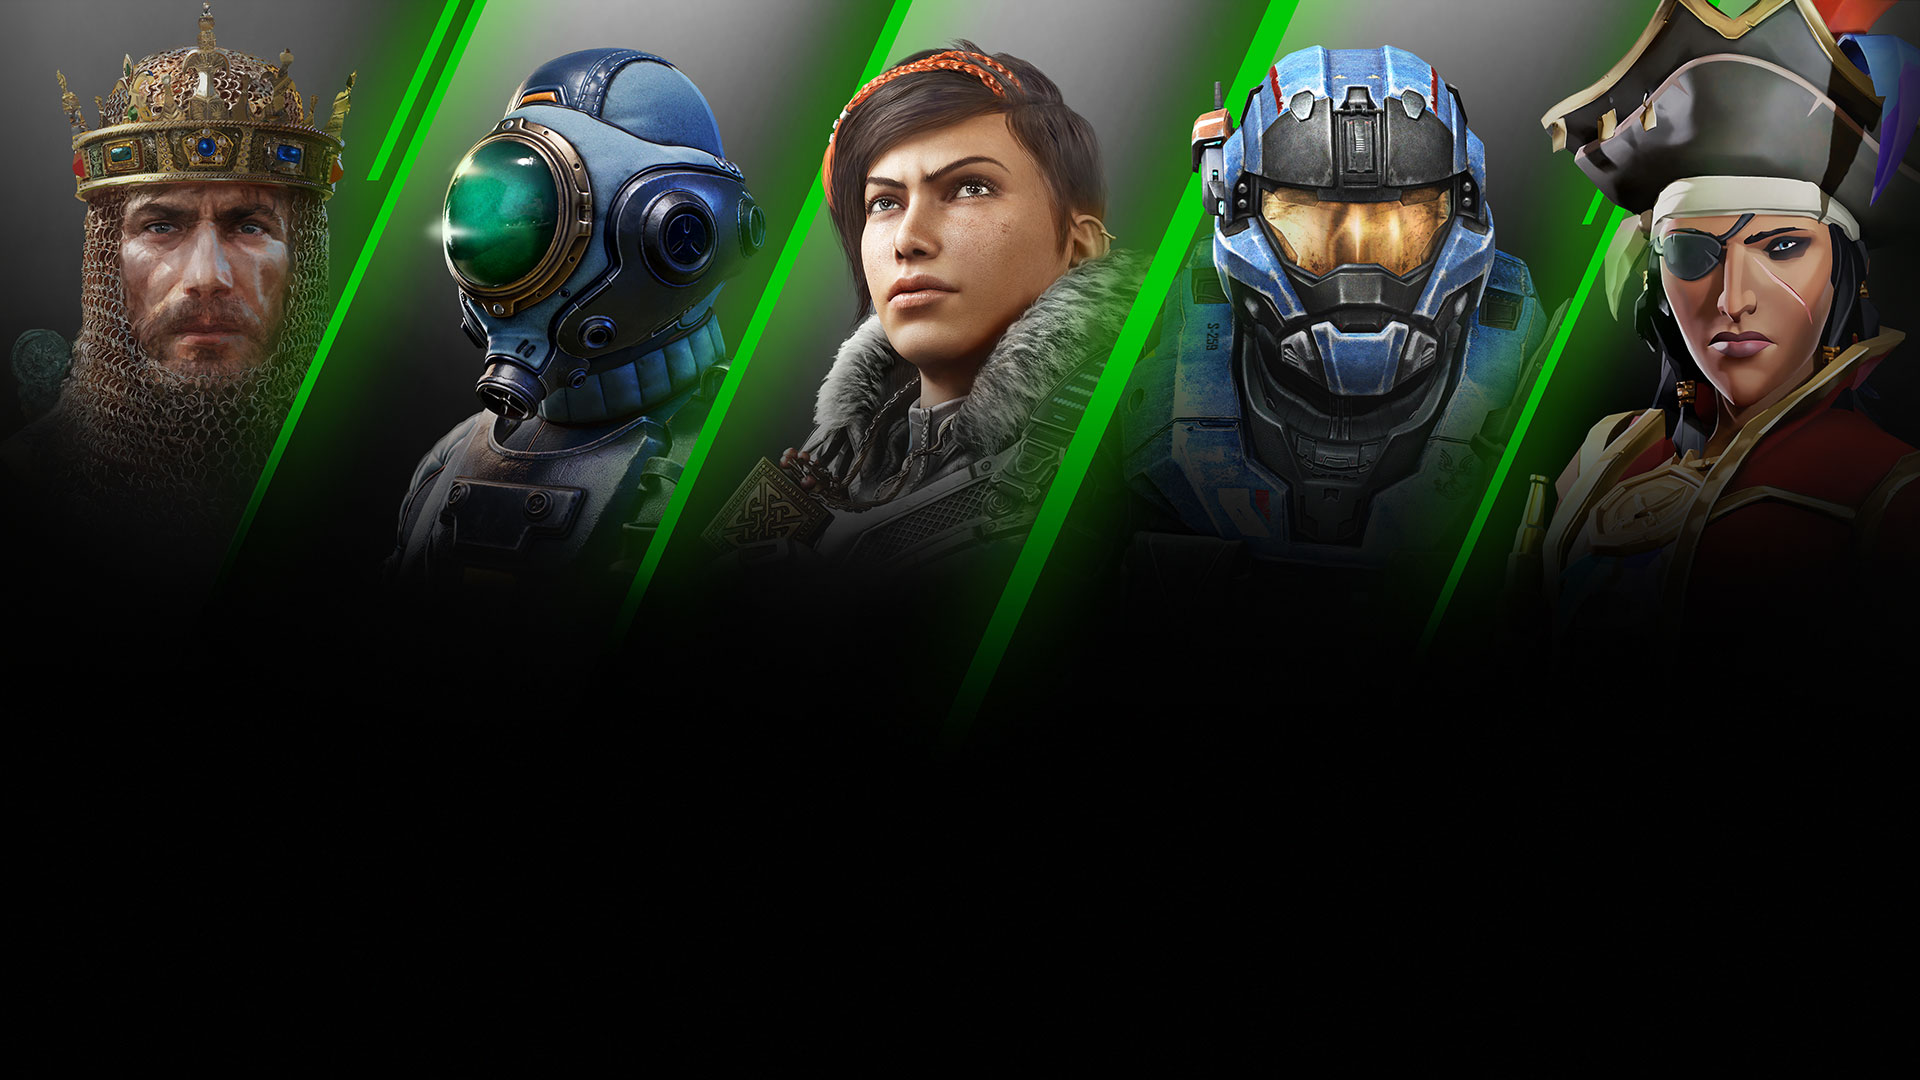 A montage of games available on Xbox Game Pass for PC, including Age of Empires 2: Definitive Edition, The Outer Worlds, Gears 5, Halo Reach, and Sea of Thieves.